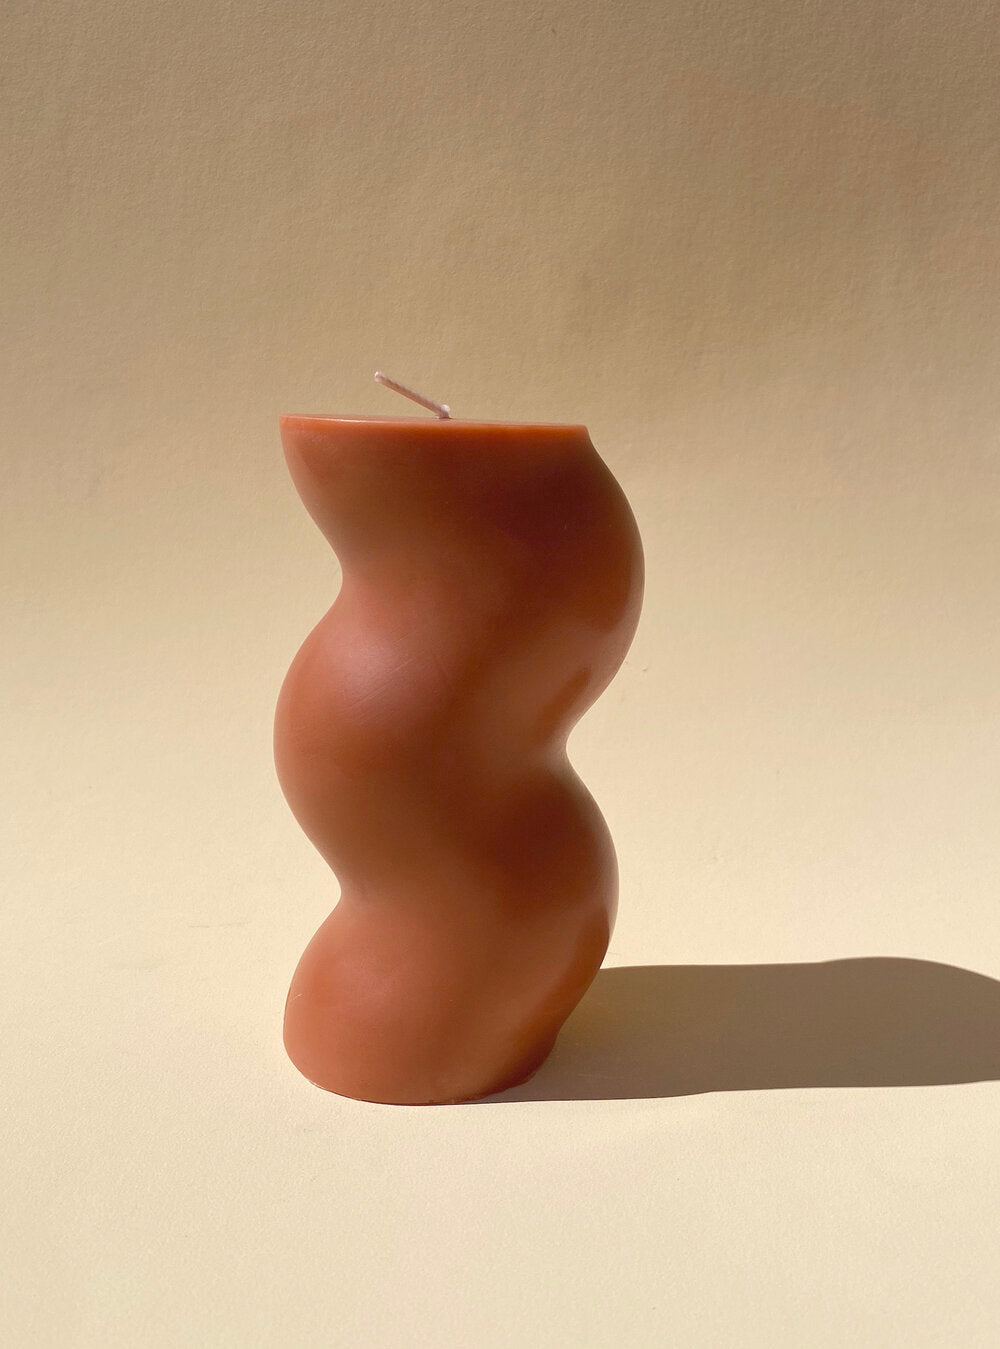 You Me Bones Thicc Squiggly Candle in Terracotta